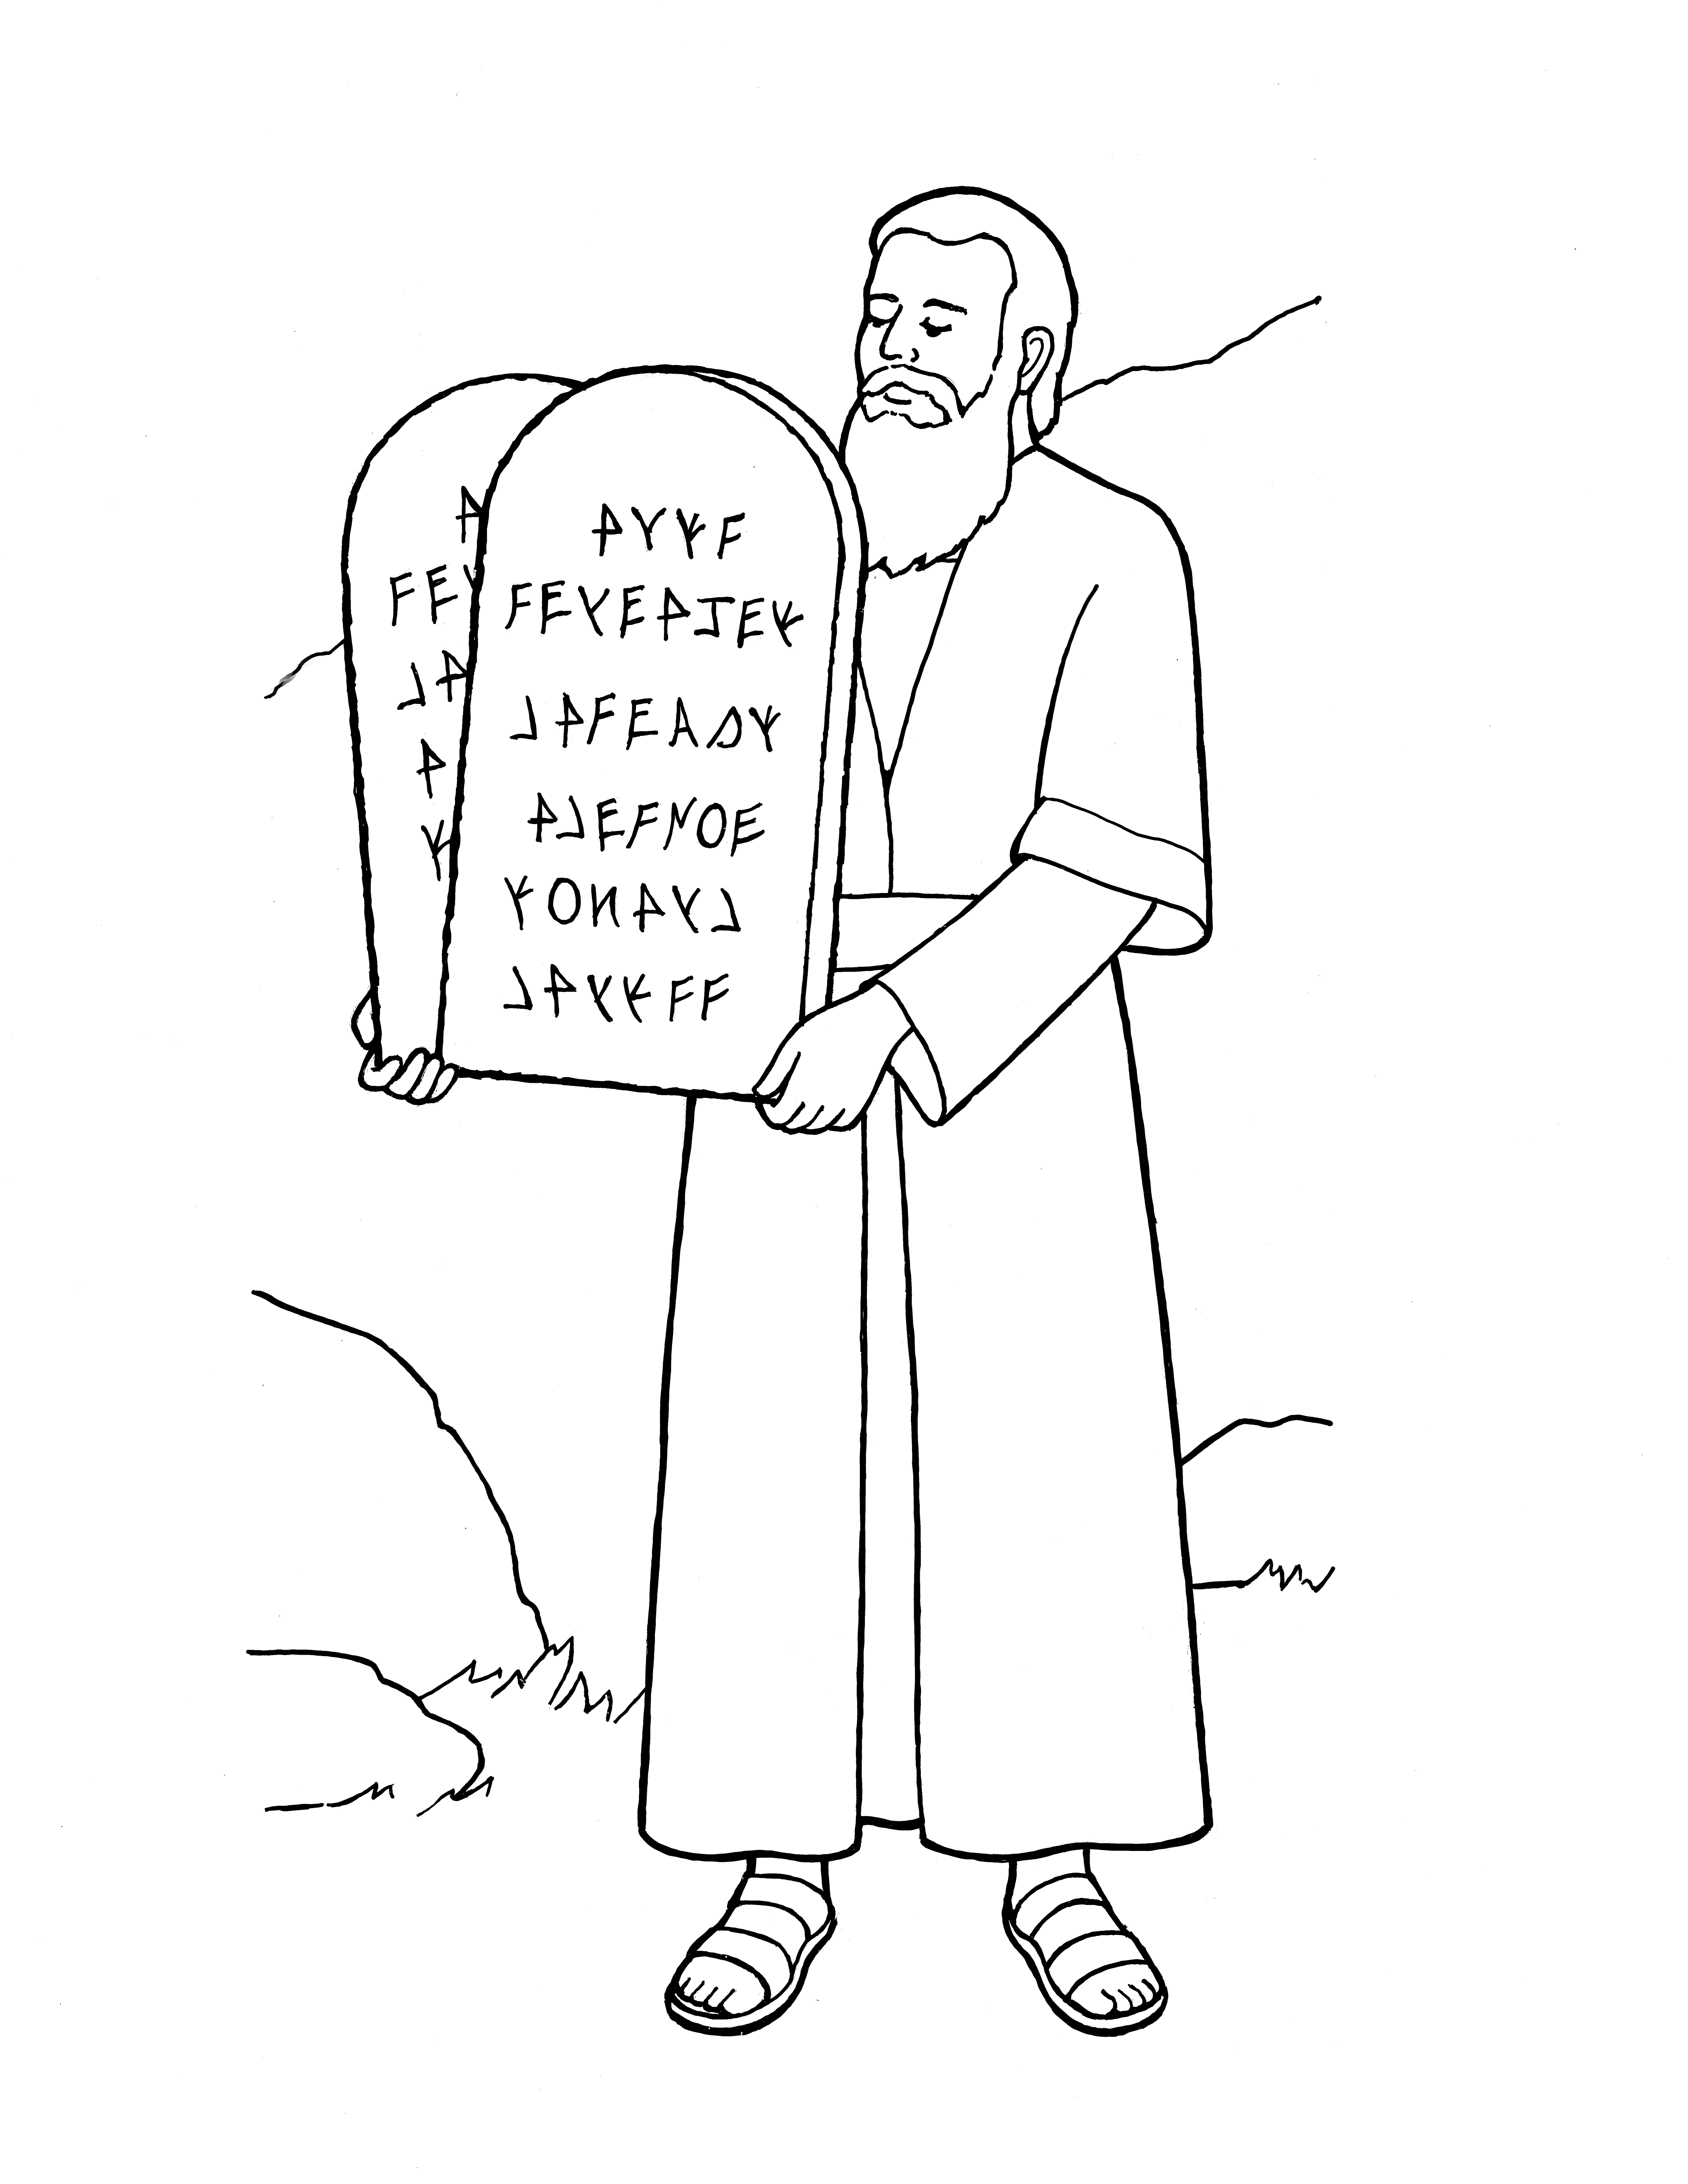 An illustration of Moses holding the tablets of the Ten Commandments, from the nursery manual Behold Your Little Ones (2008), page 99.